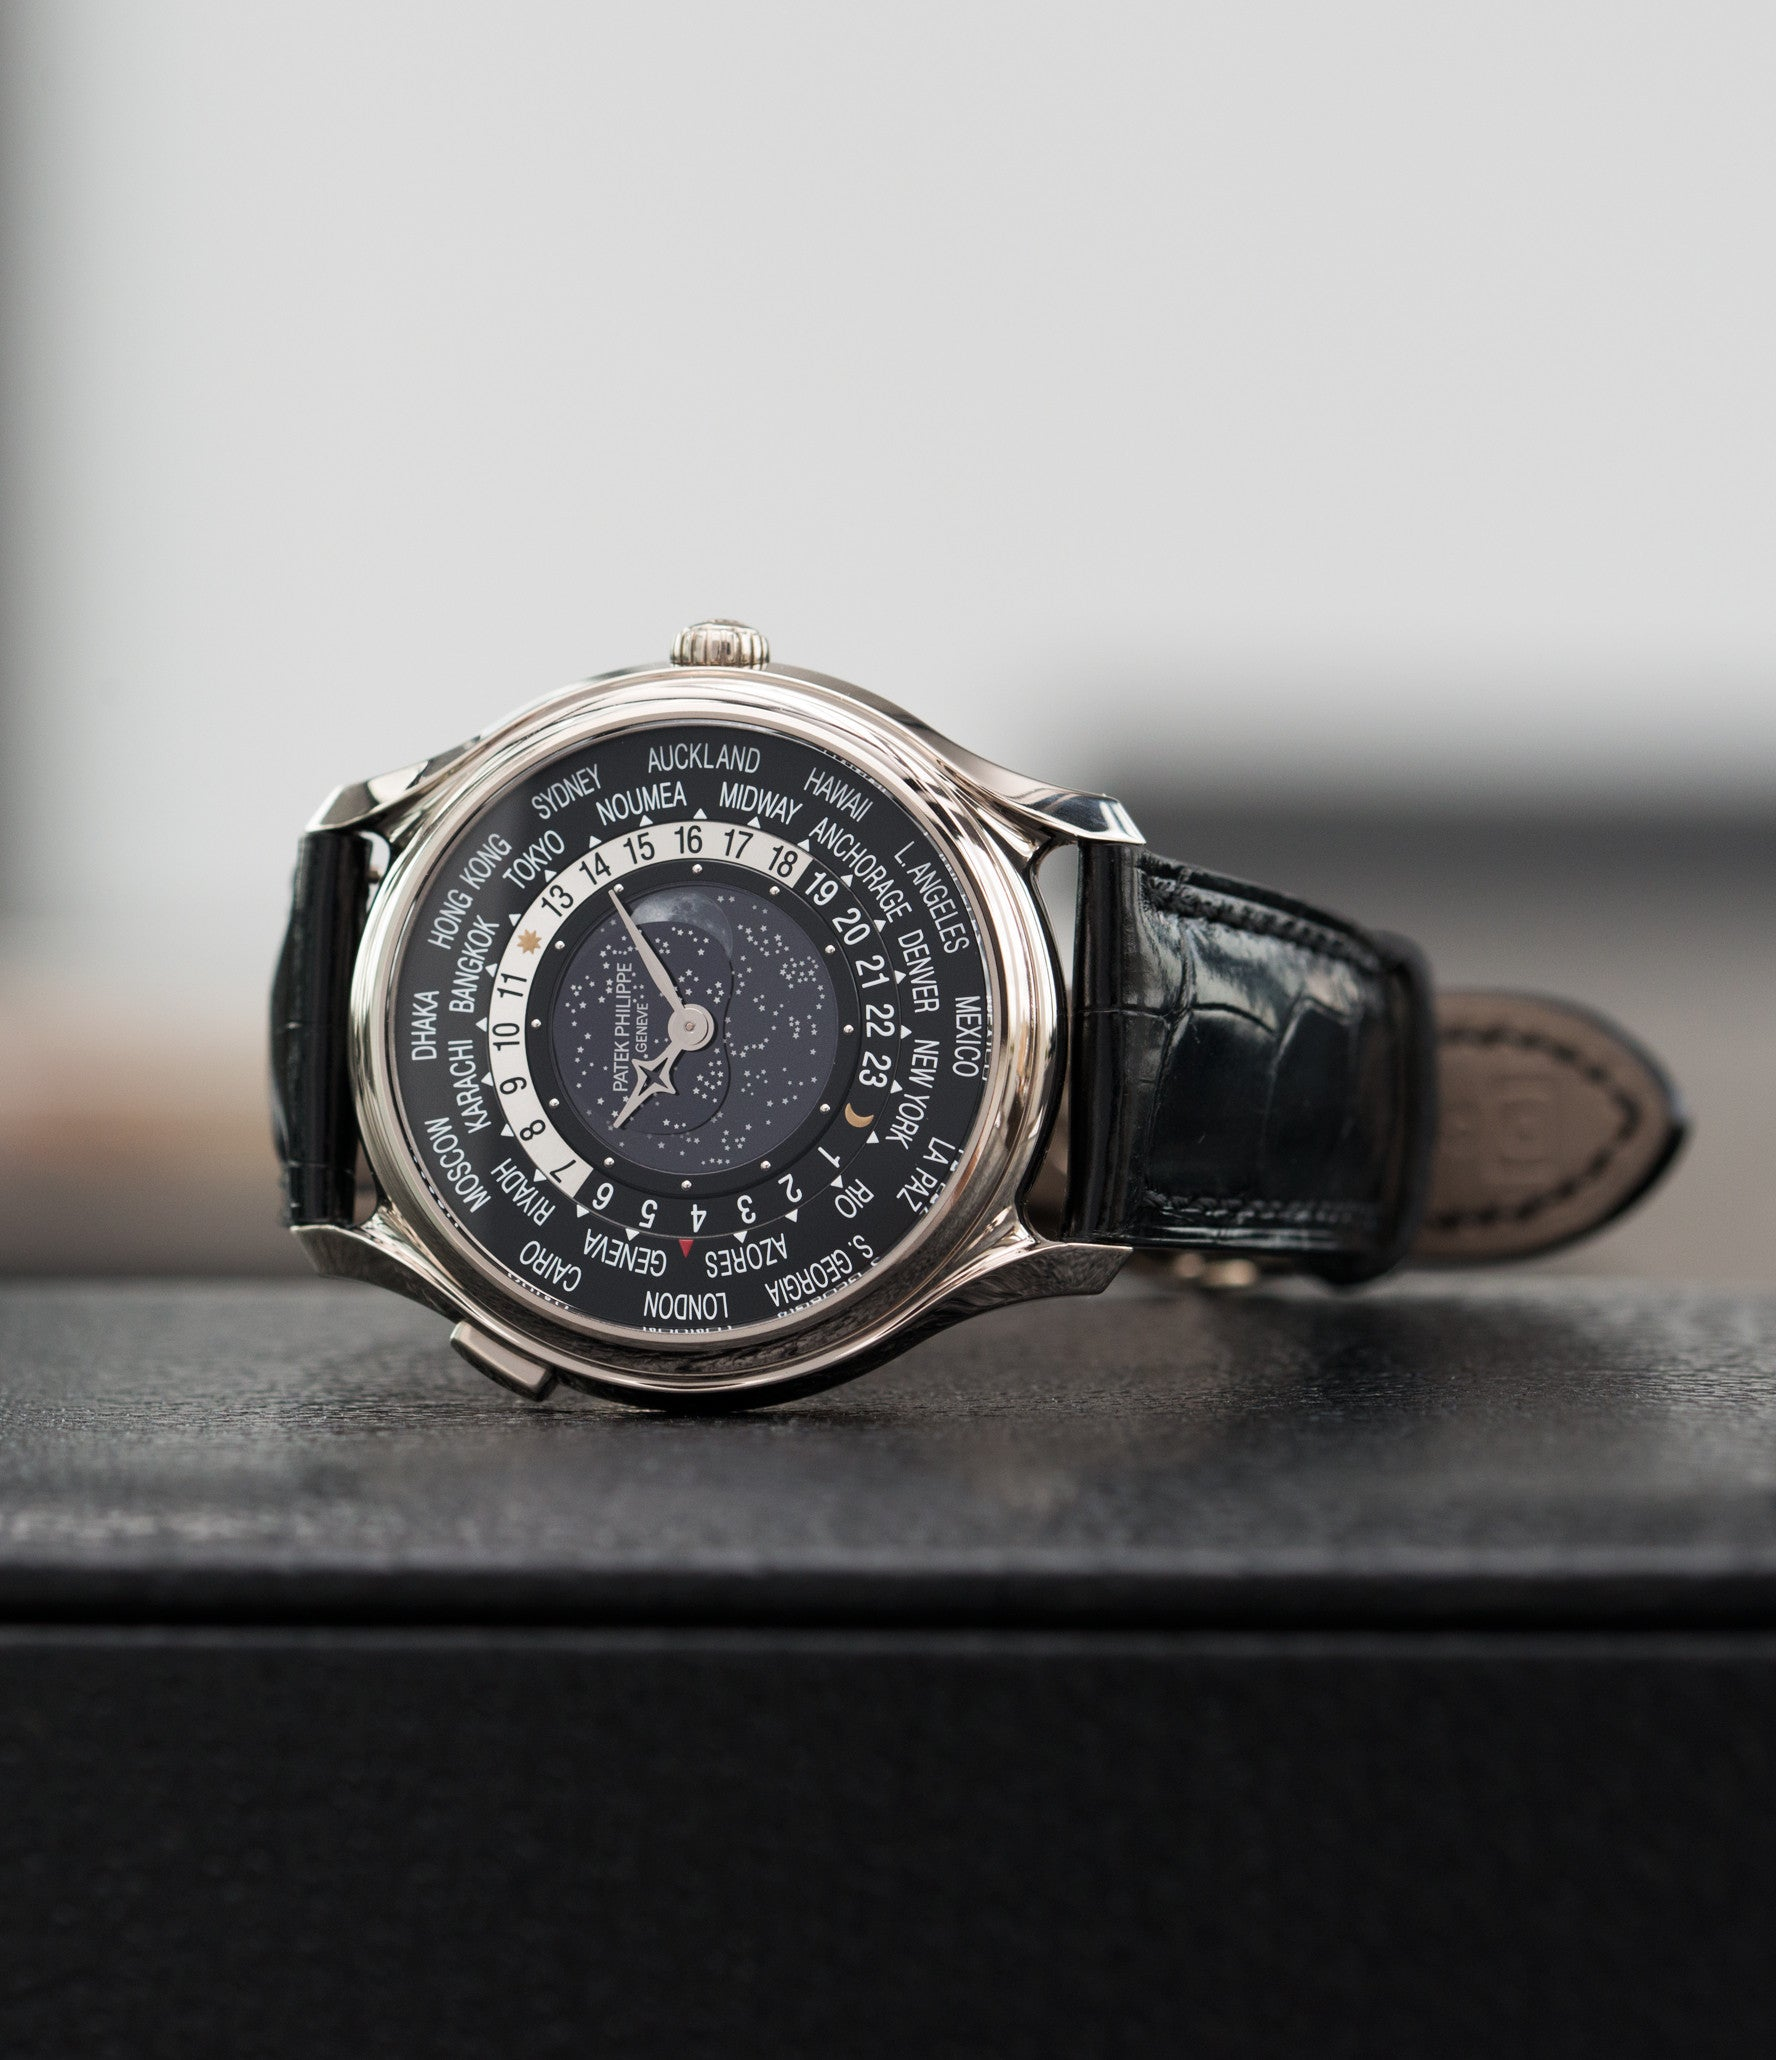 rare Patek Philippe Worldtimer Moonphase 5575G 175th Anniversary white gold preowned dress watch for sale online at A Collected Man London rare watch specialist